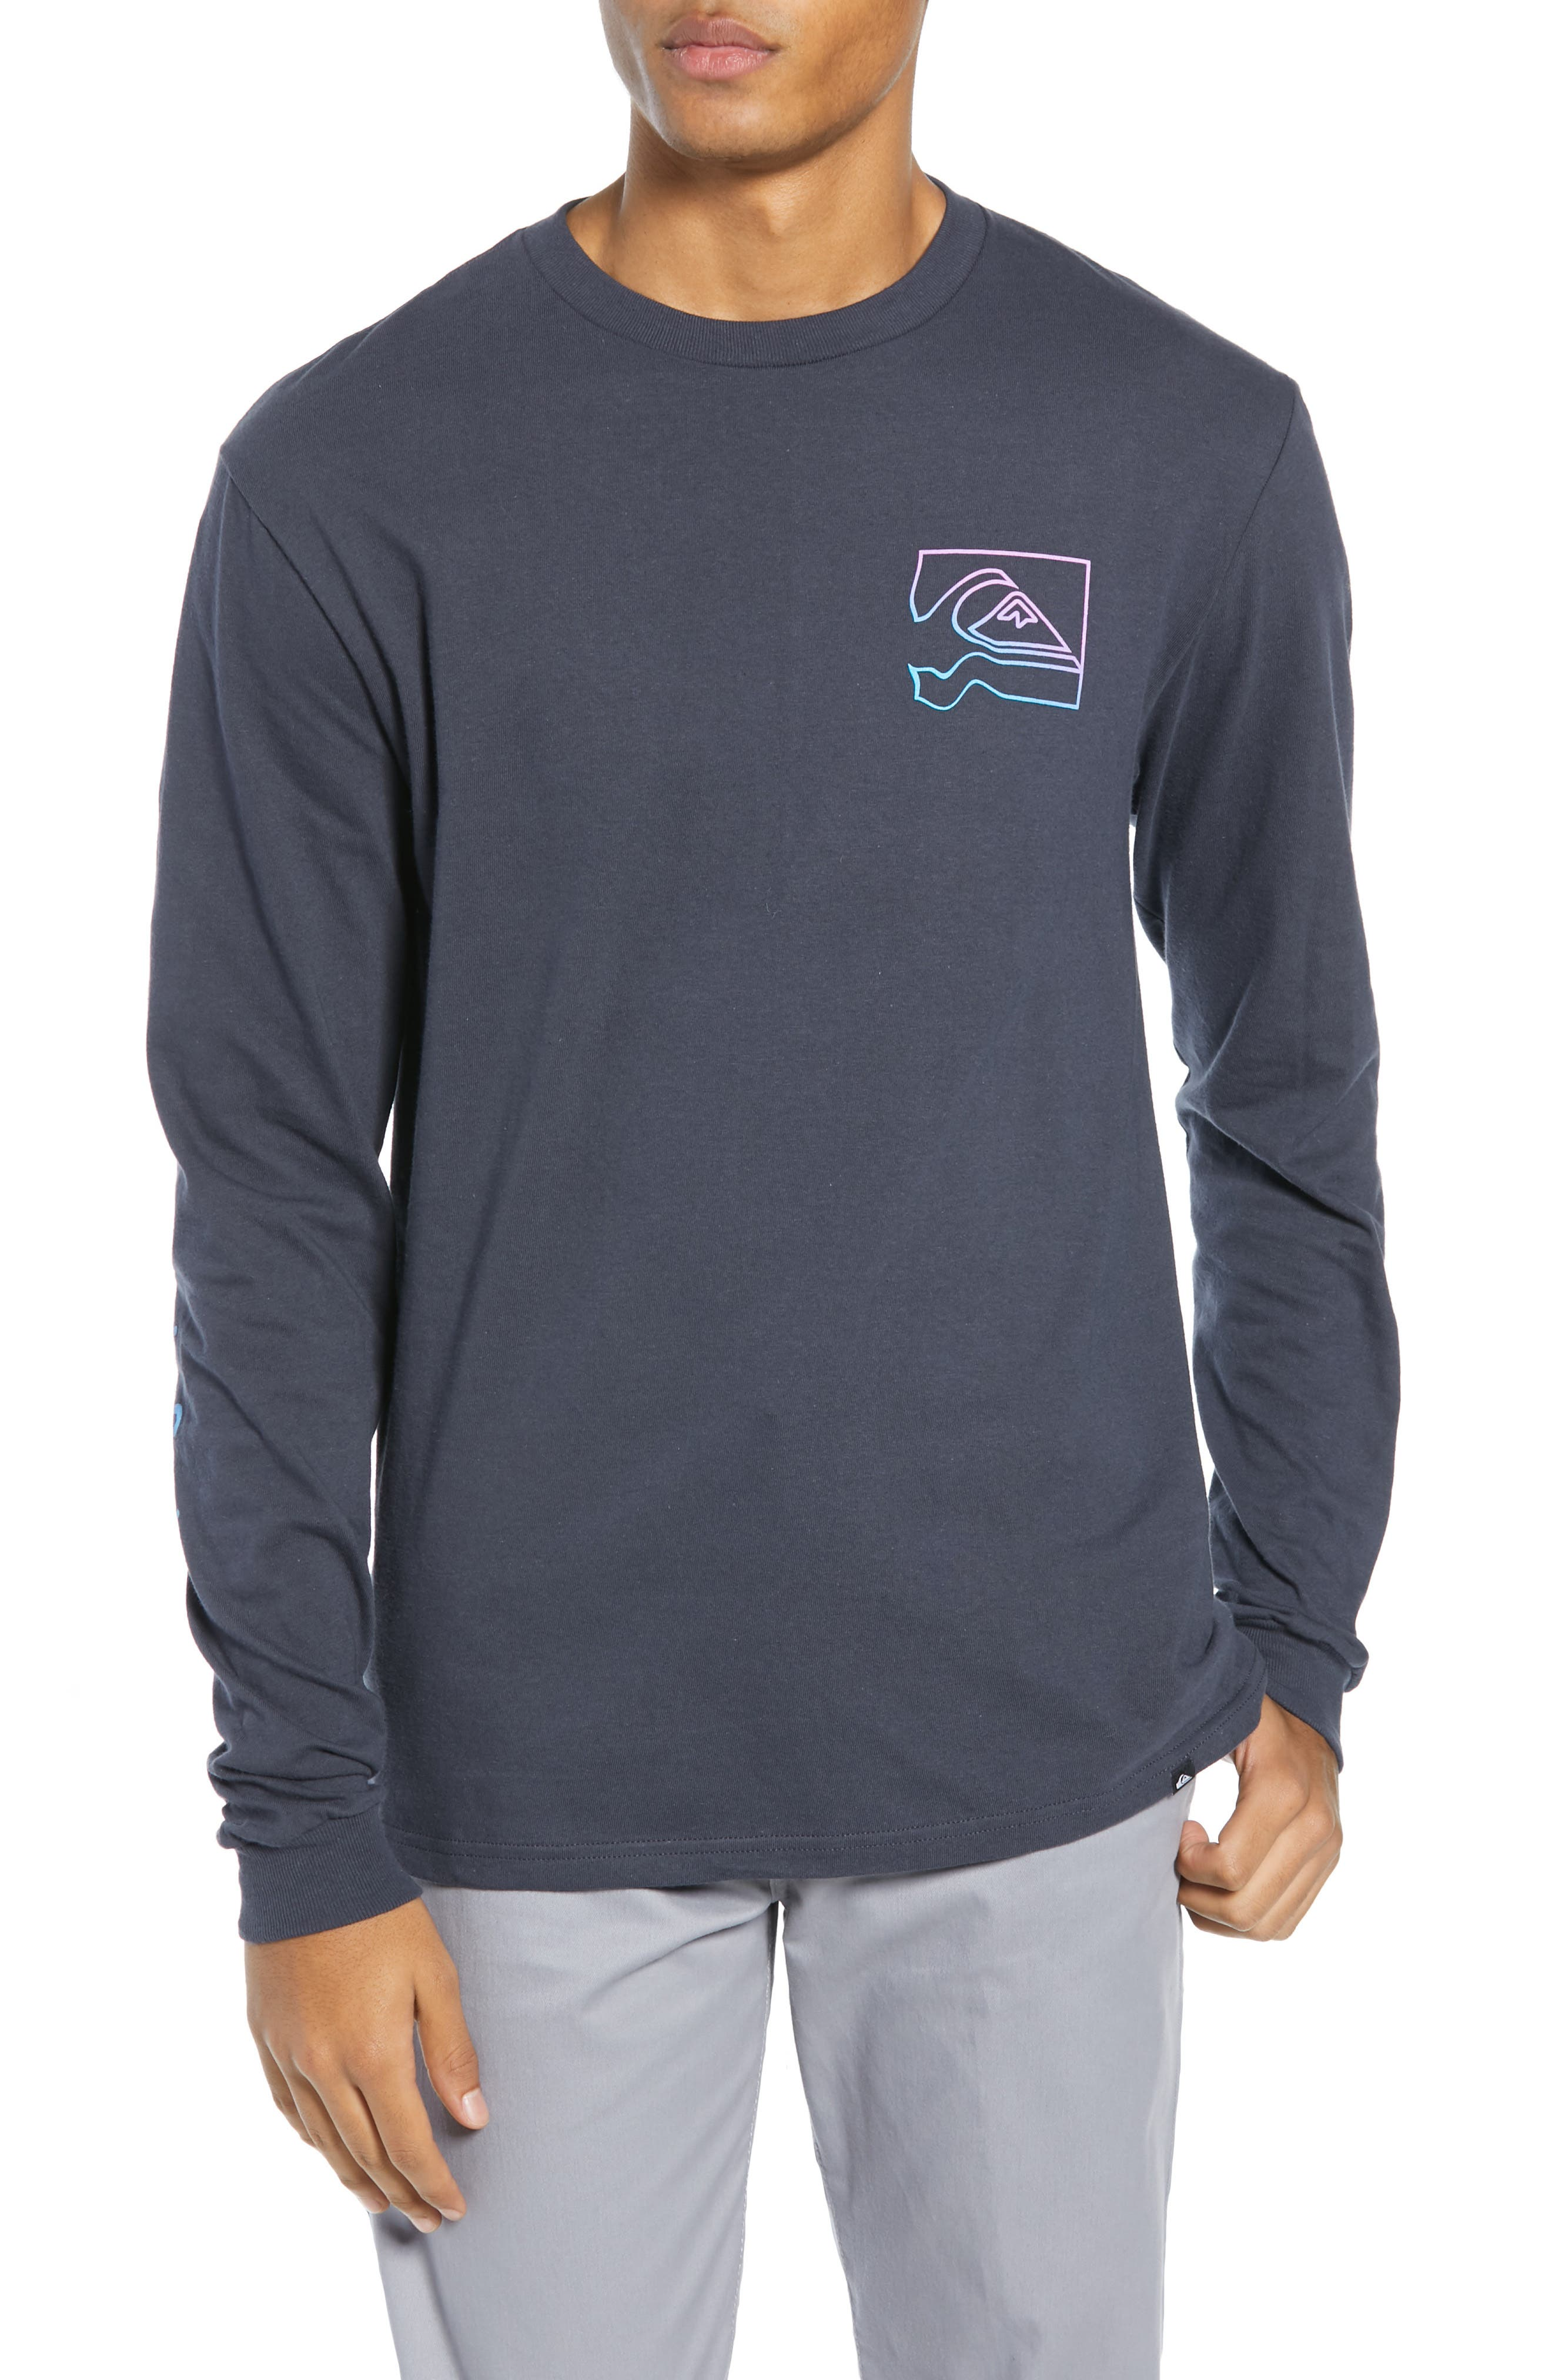 QUIKSILVER Distortion T-Shirt in Blue Nights